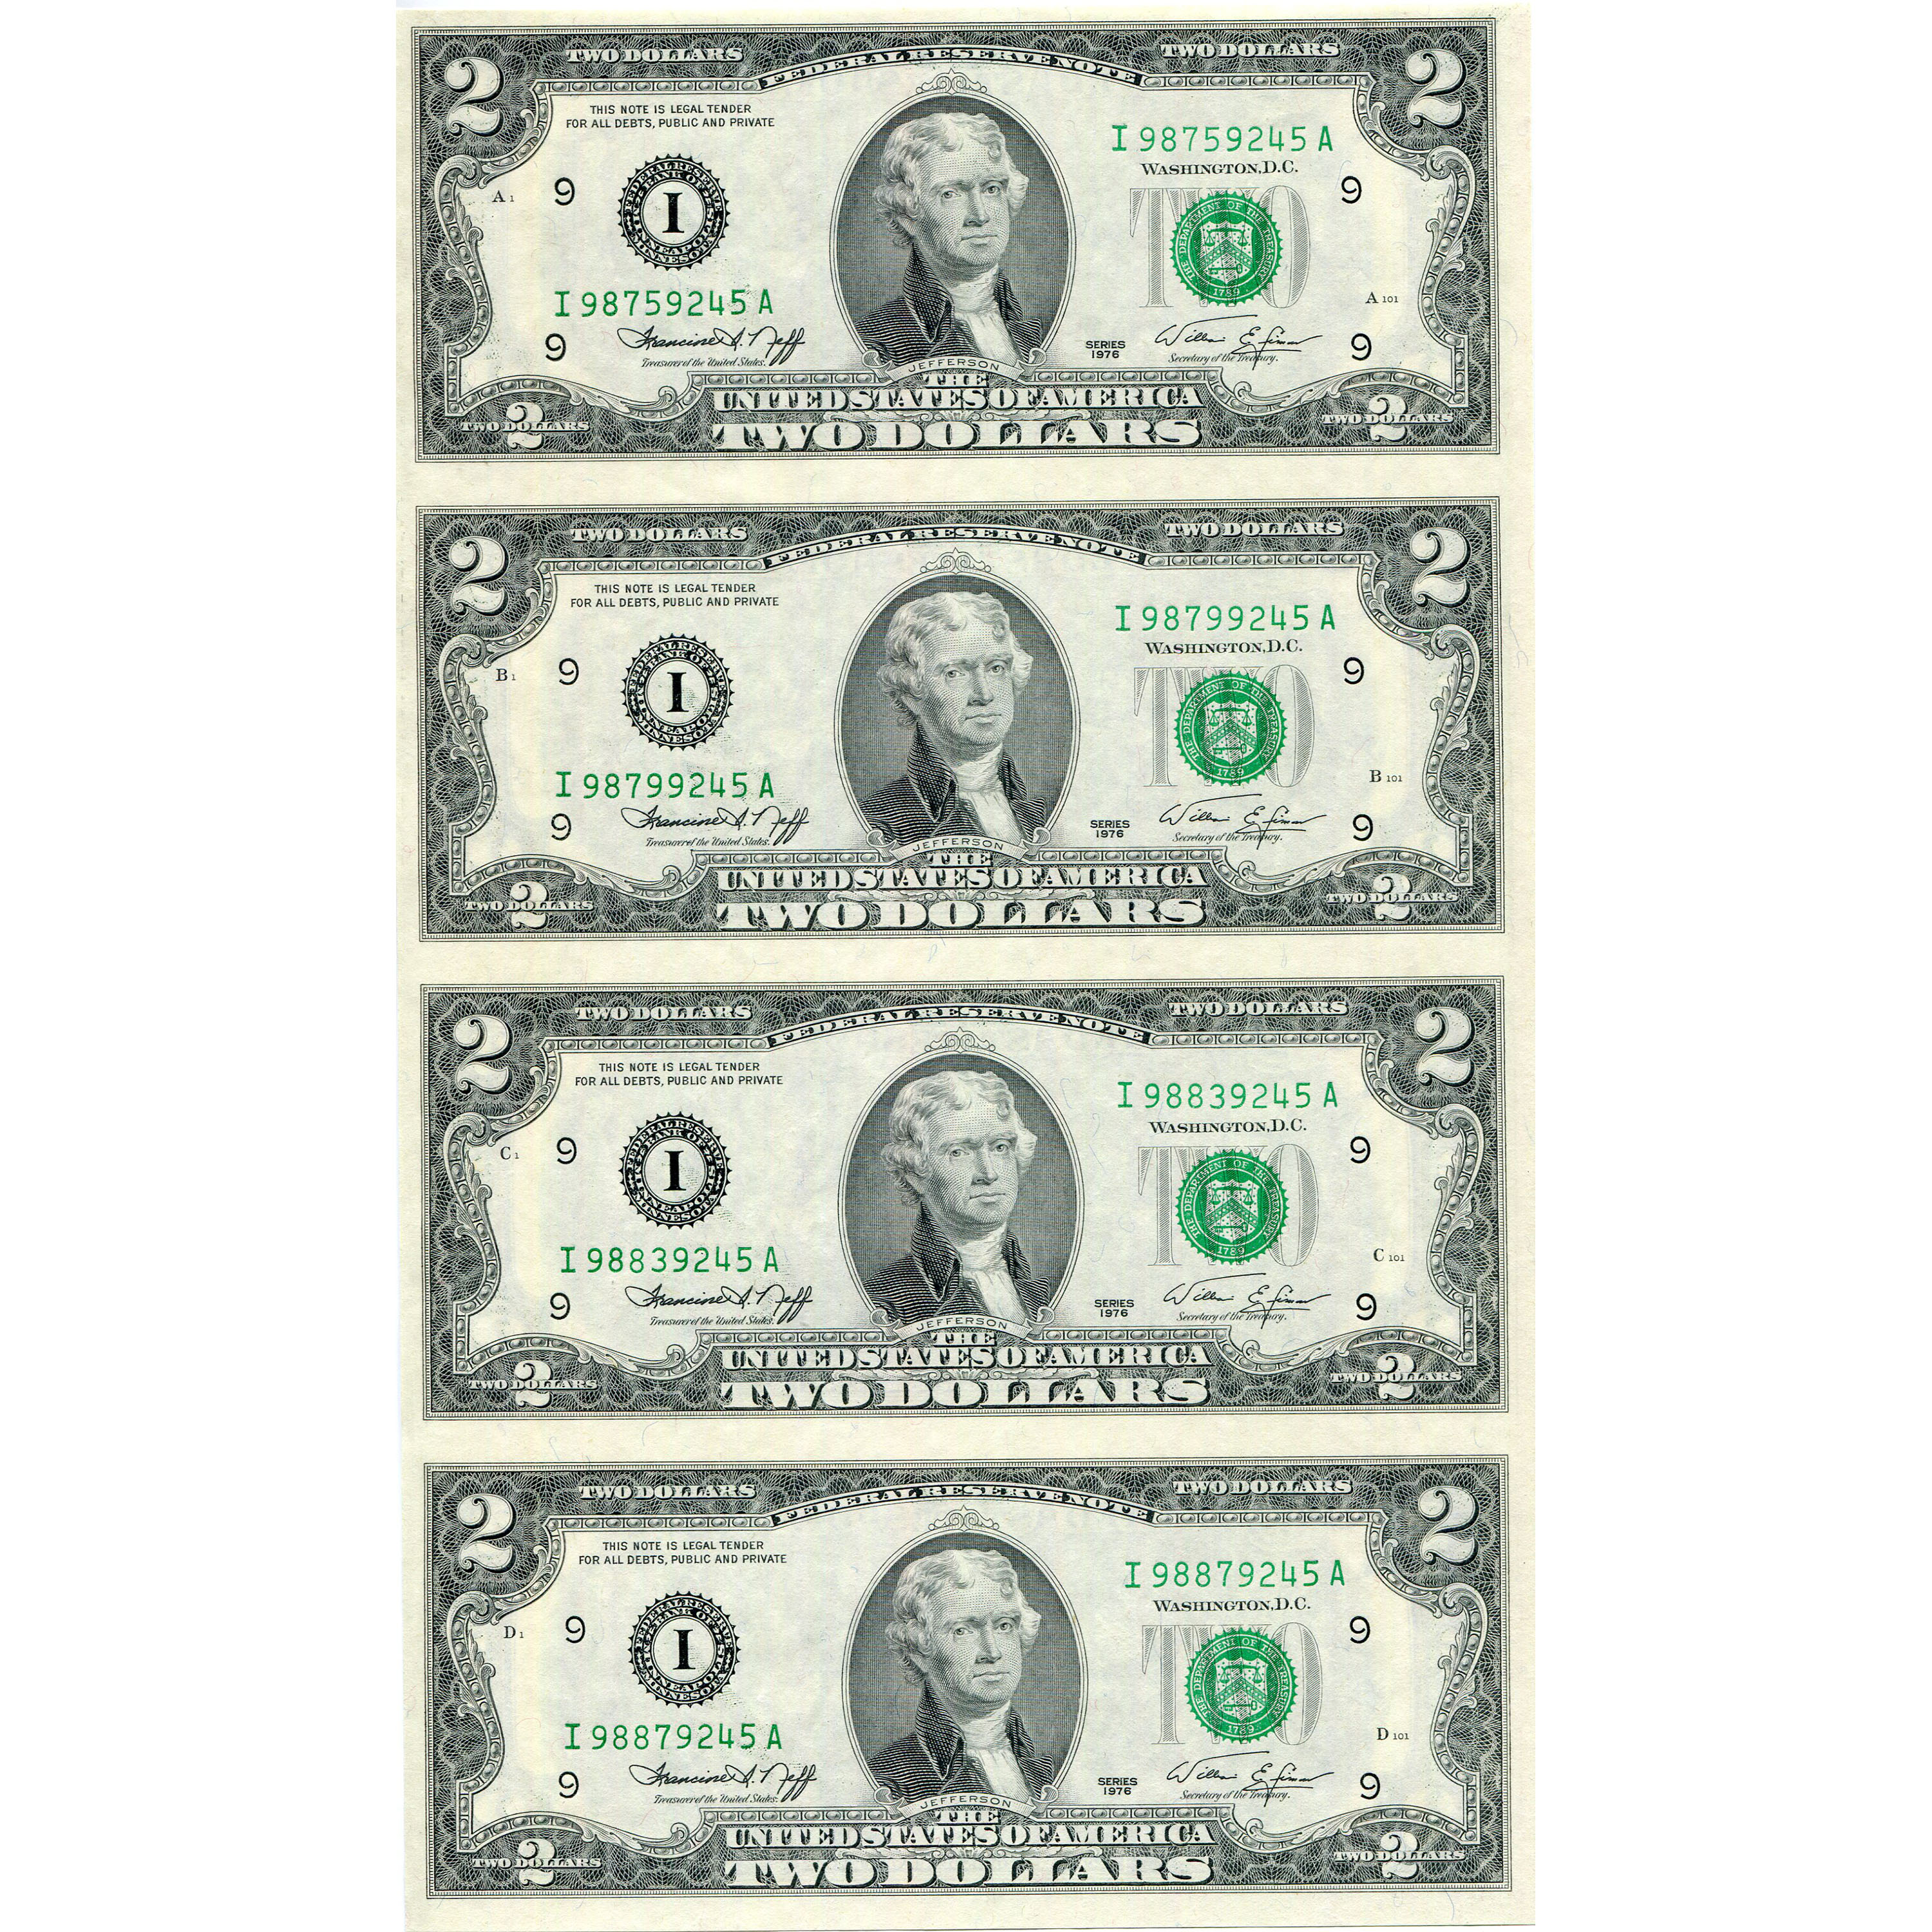 $2 Uncut Currency Sheets